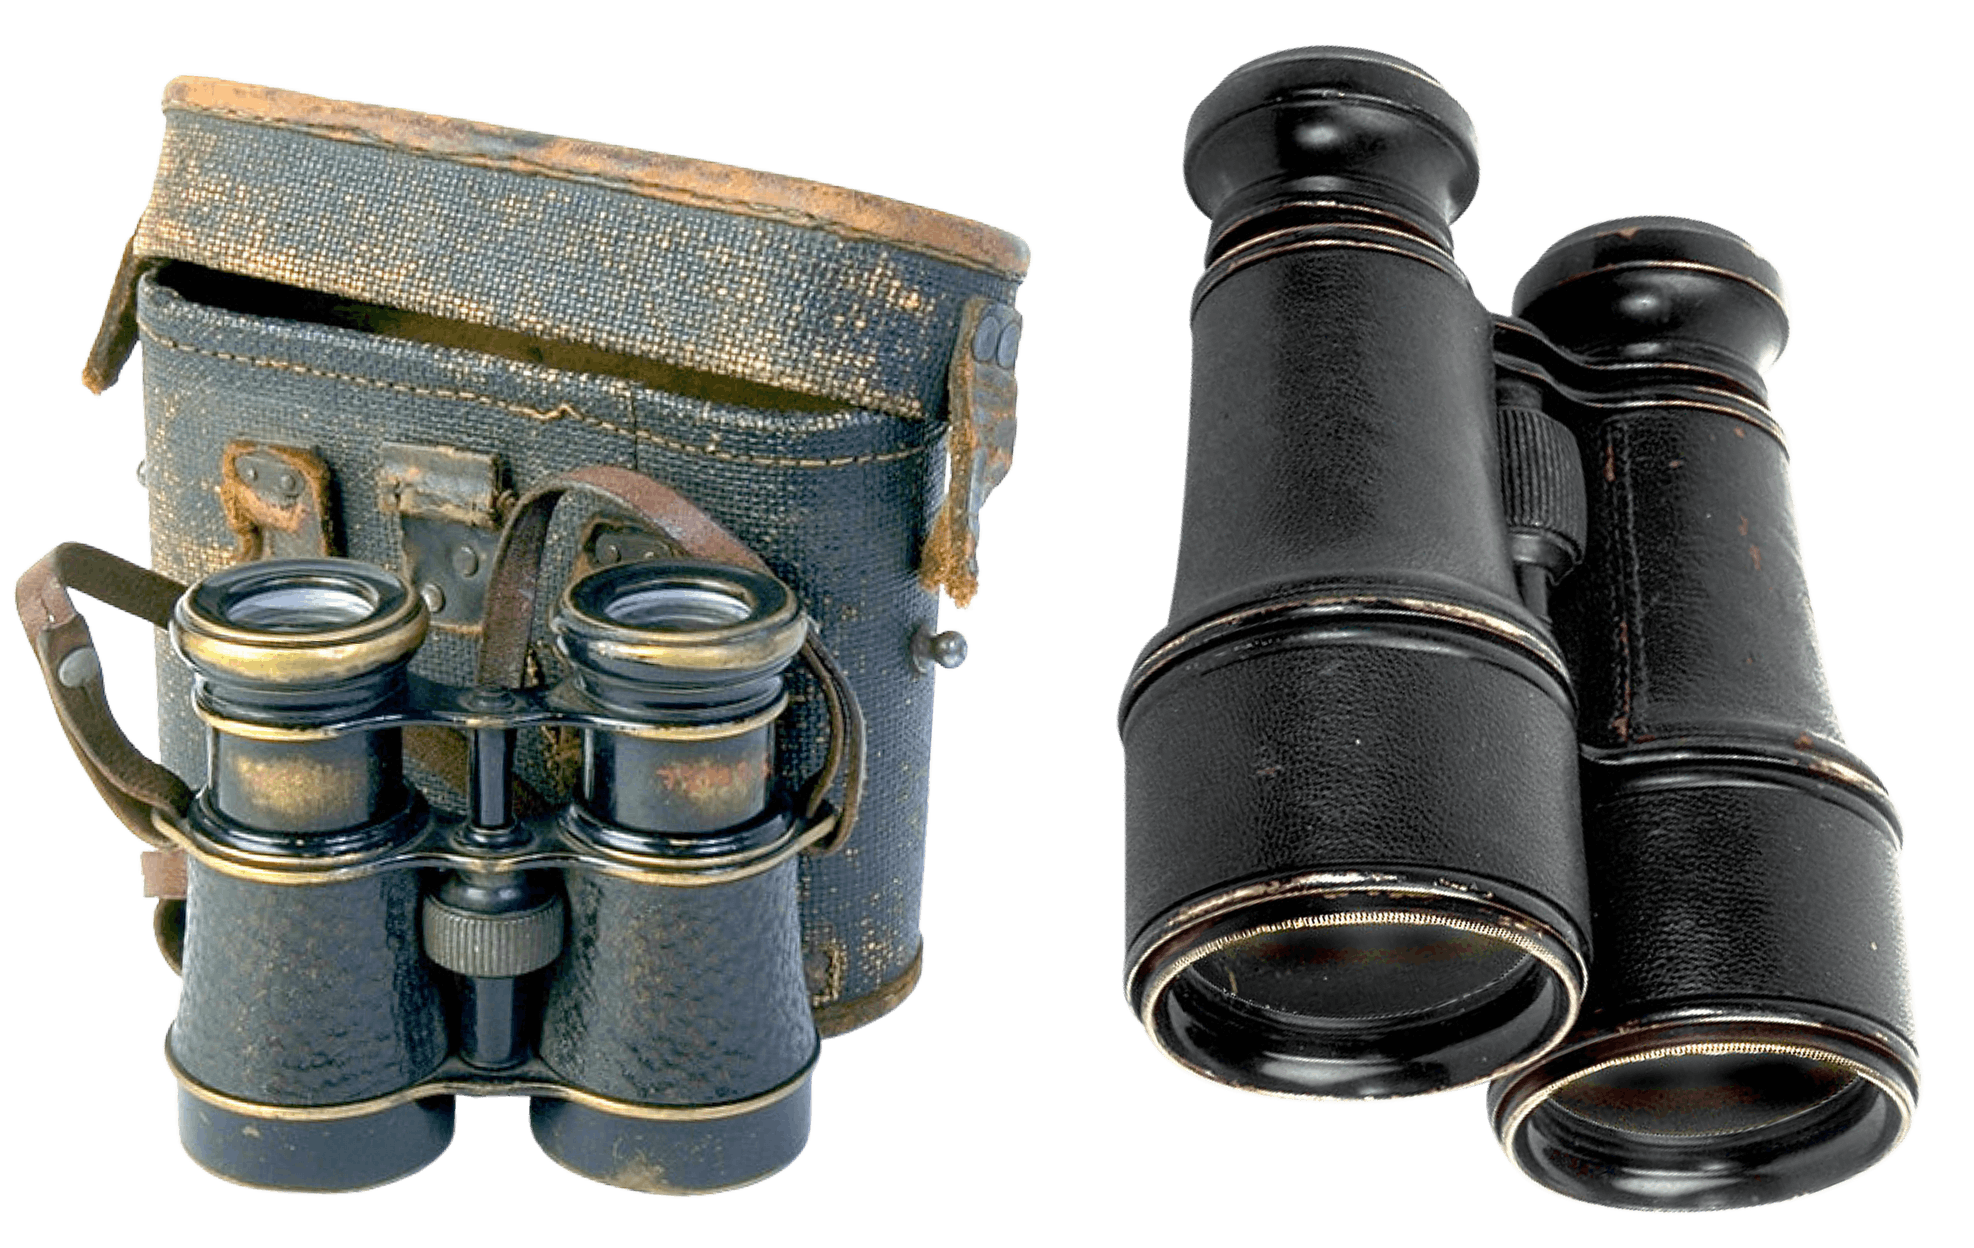 Free stock photo of field, watch, binoculars, old